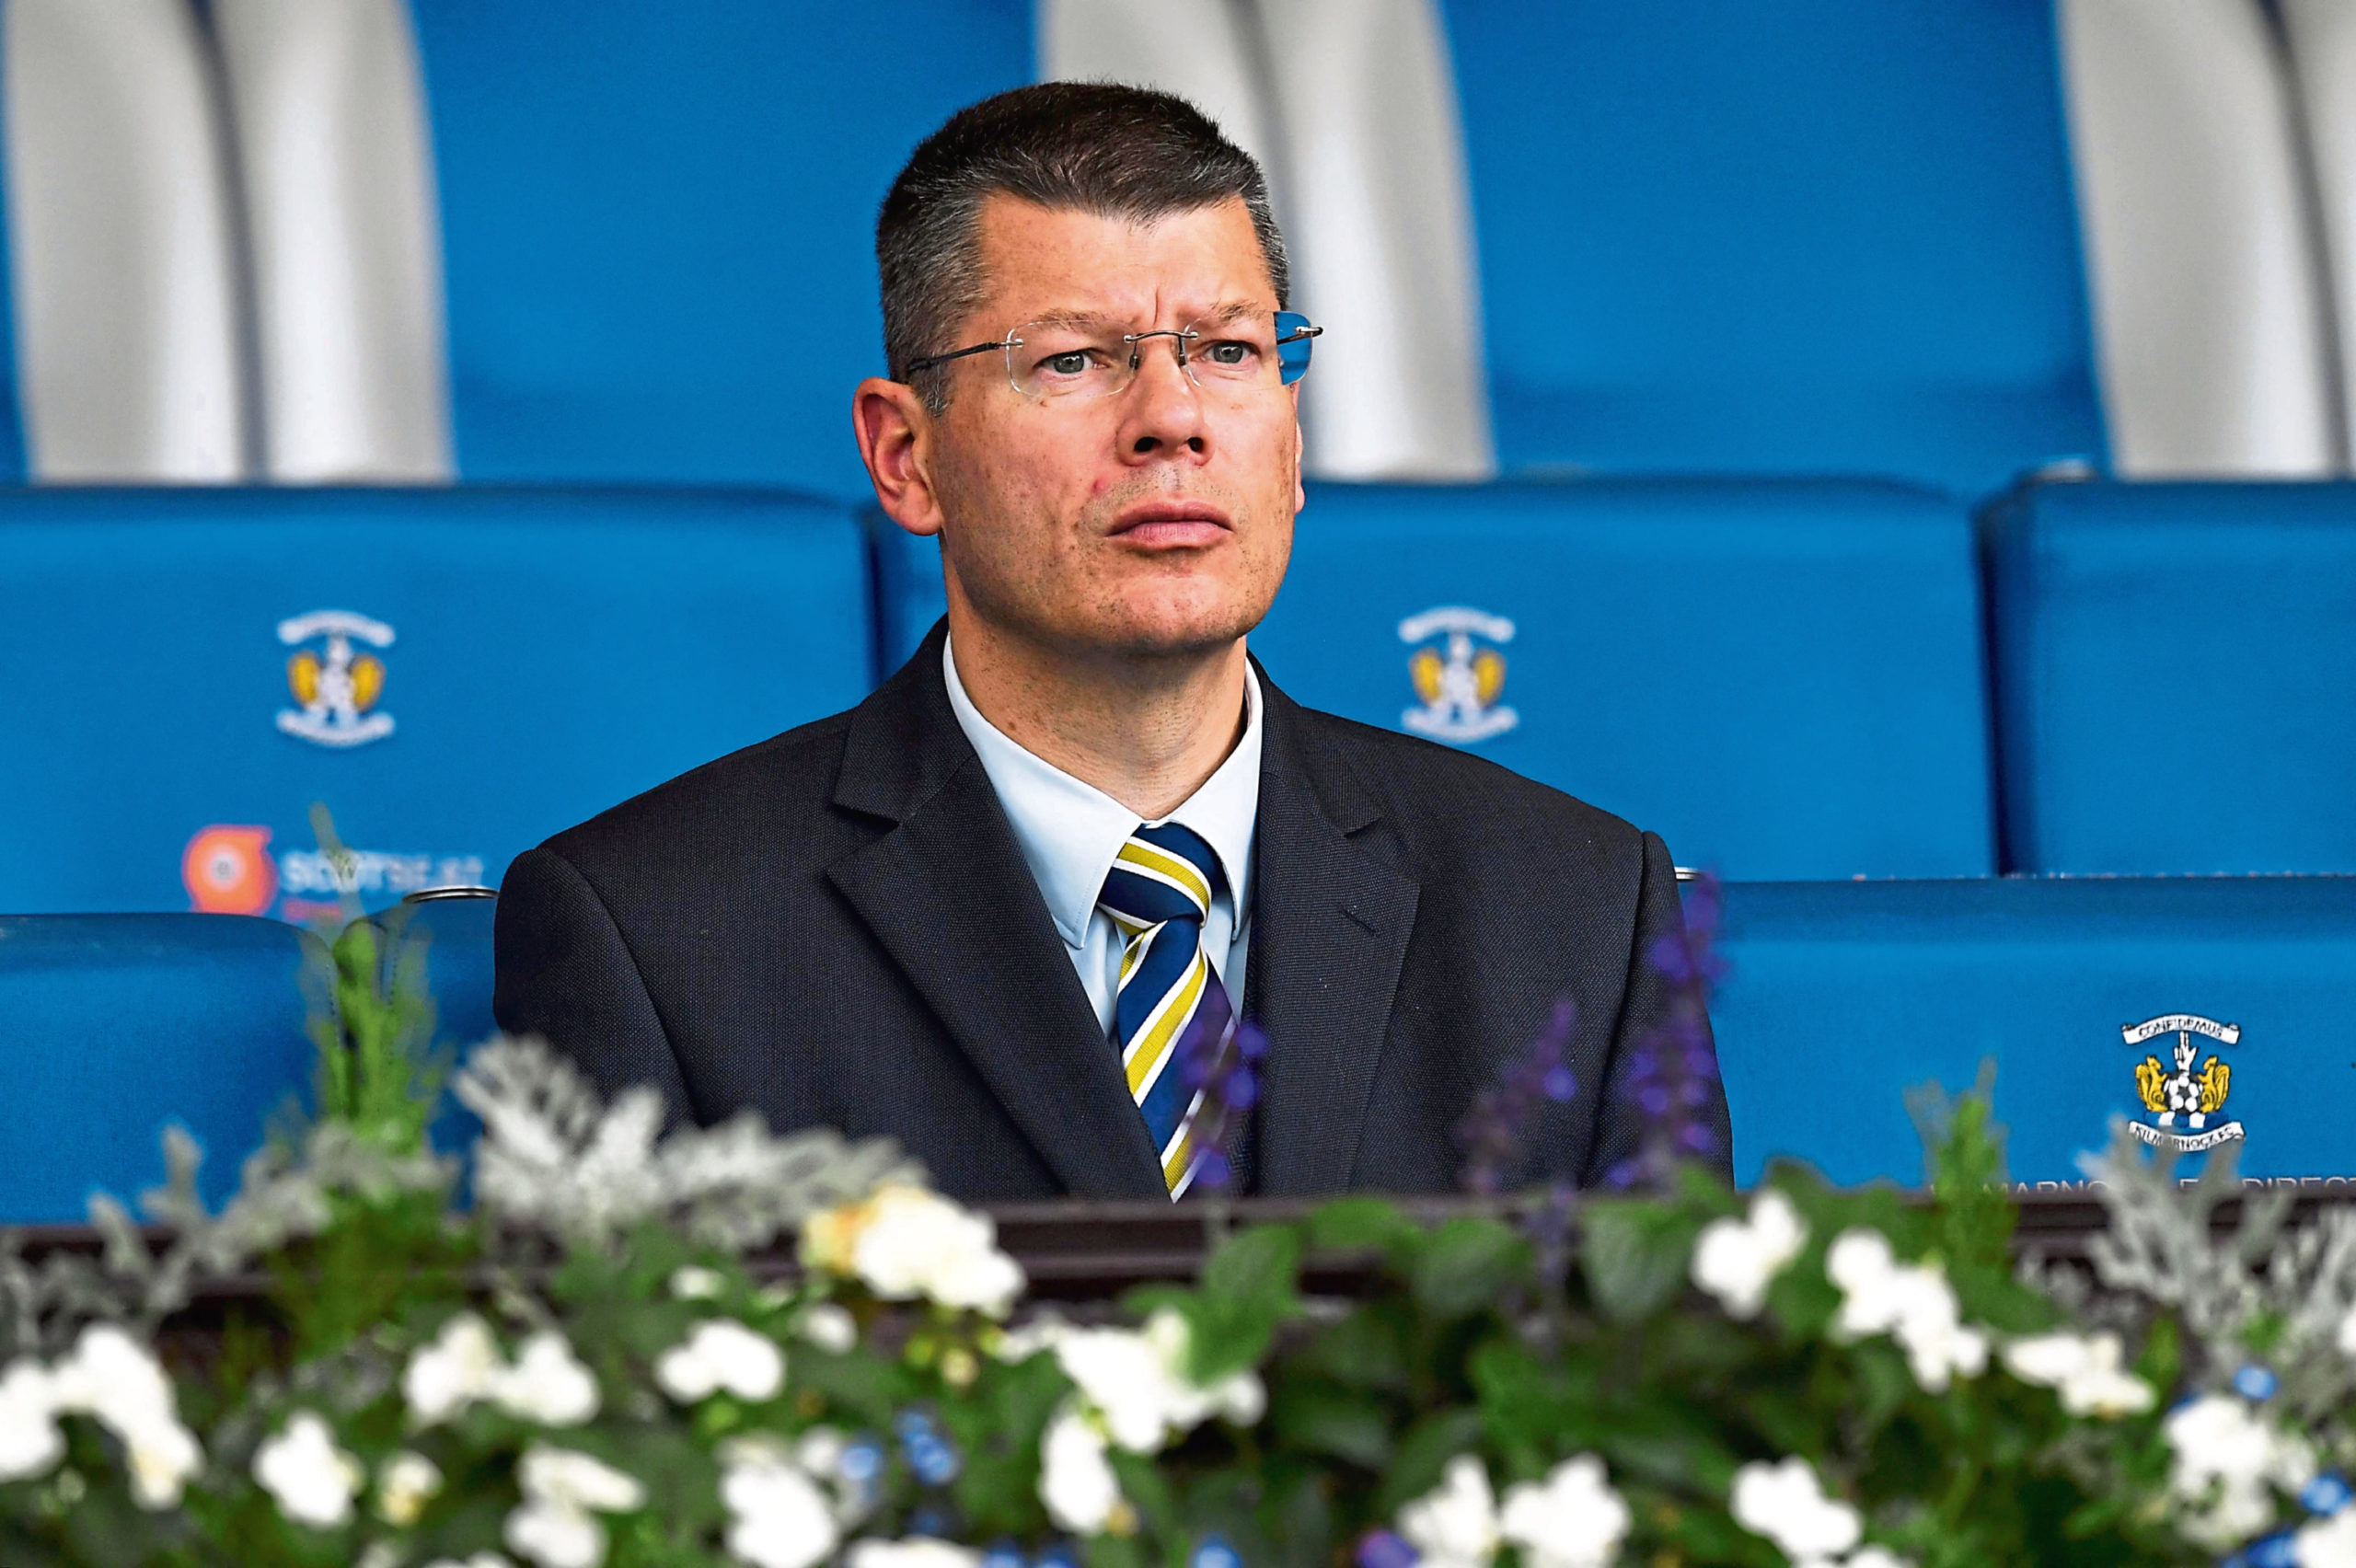 SPFL chief executive Neil Doncaster has been under fire